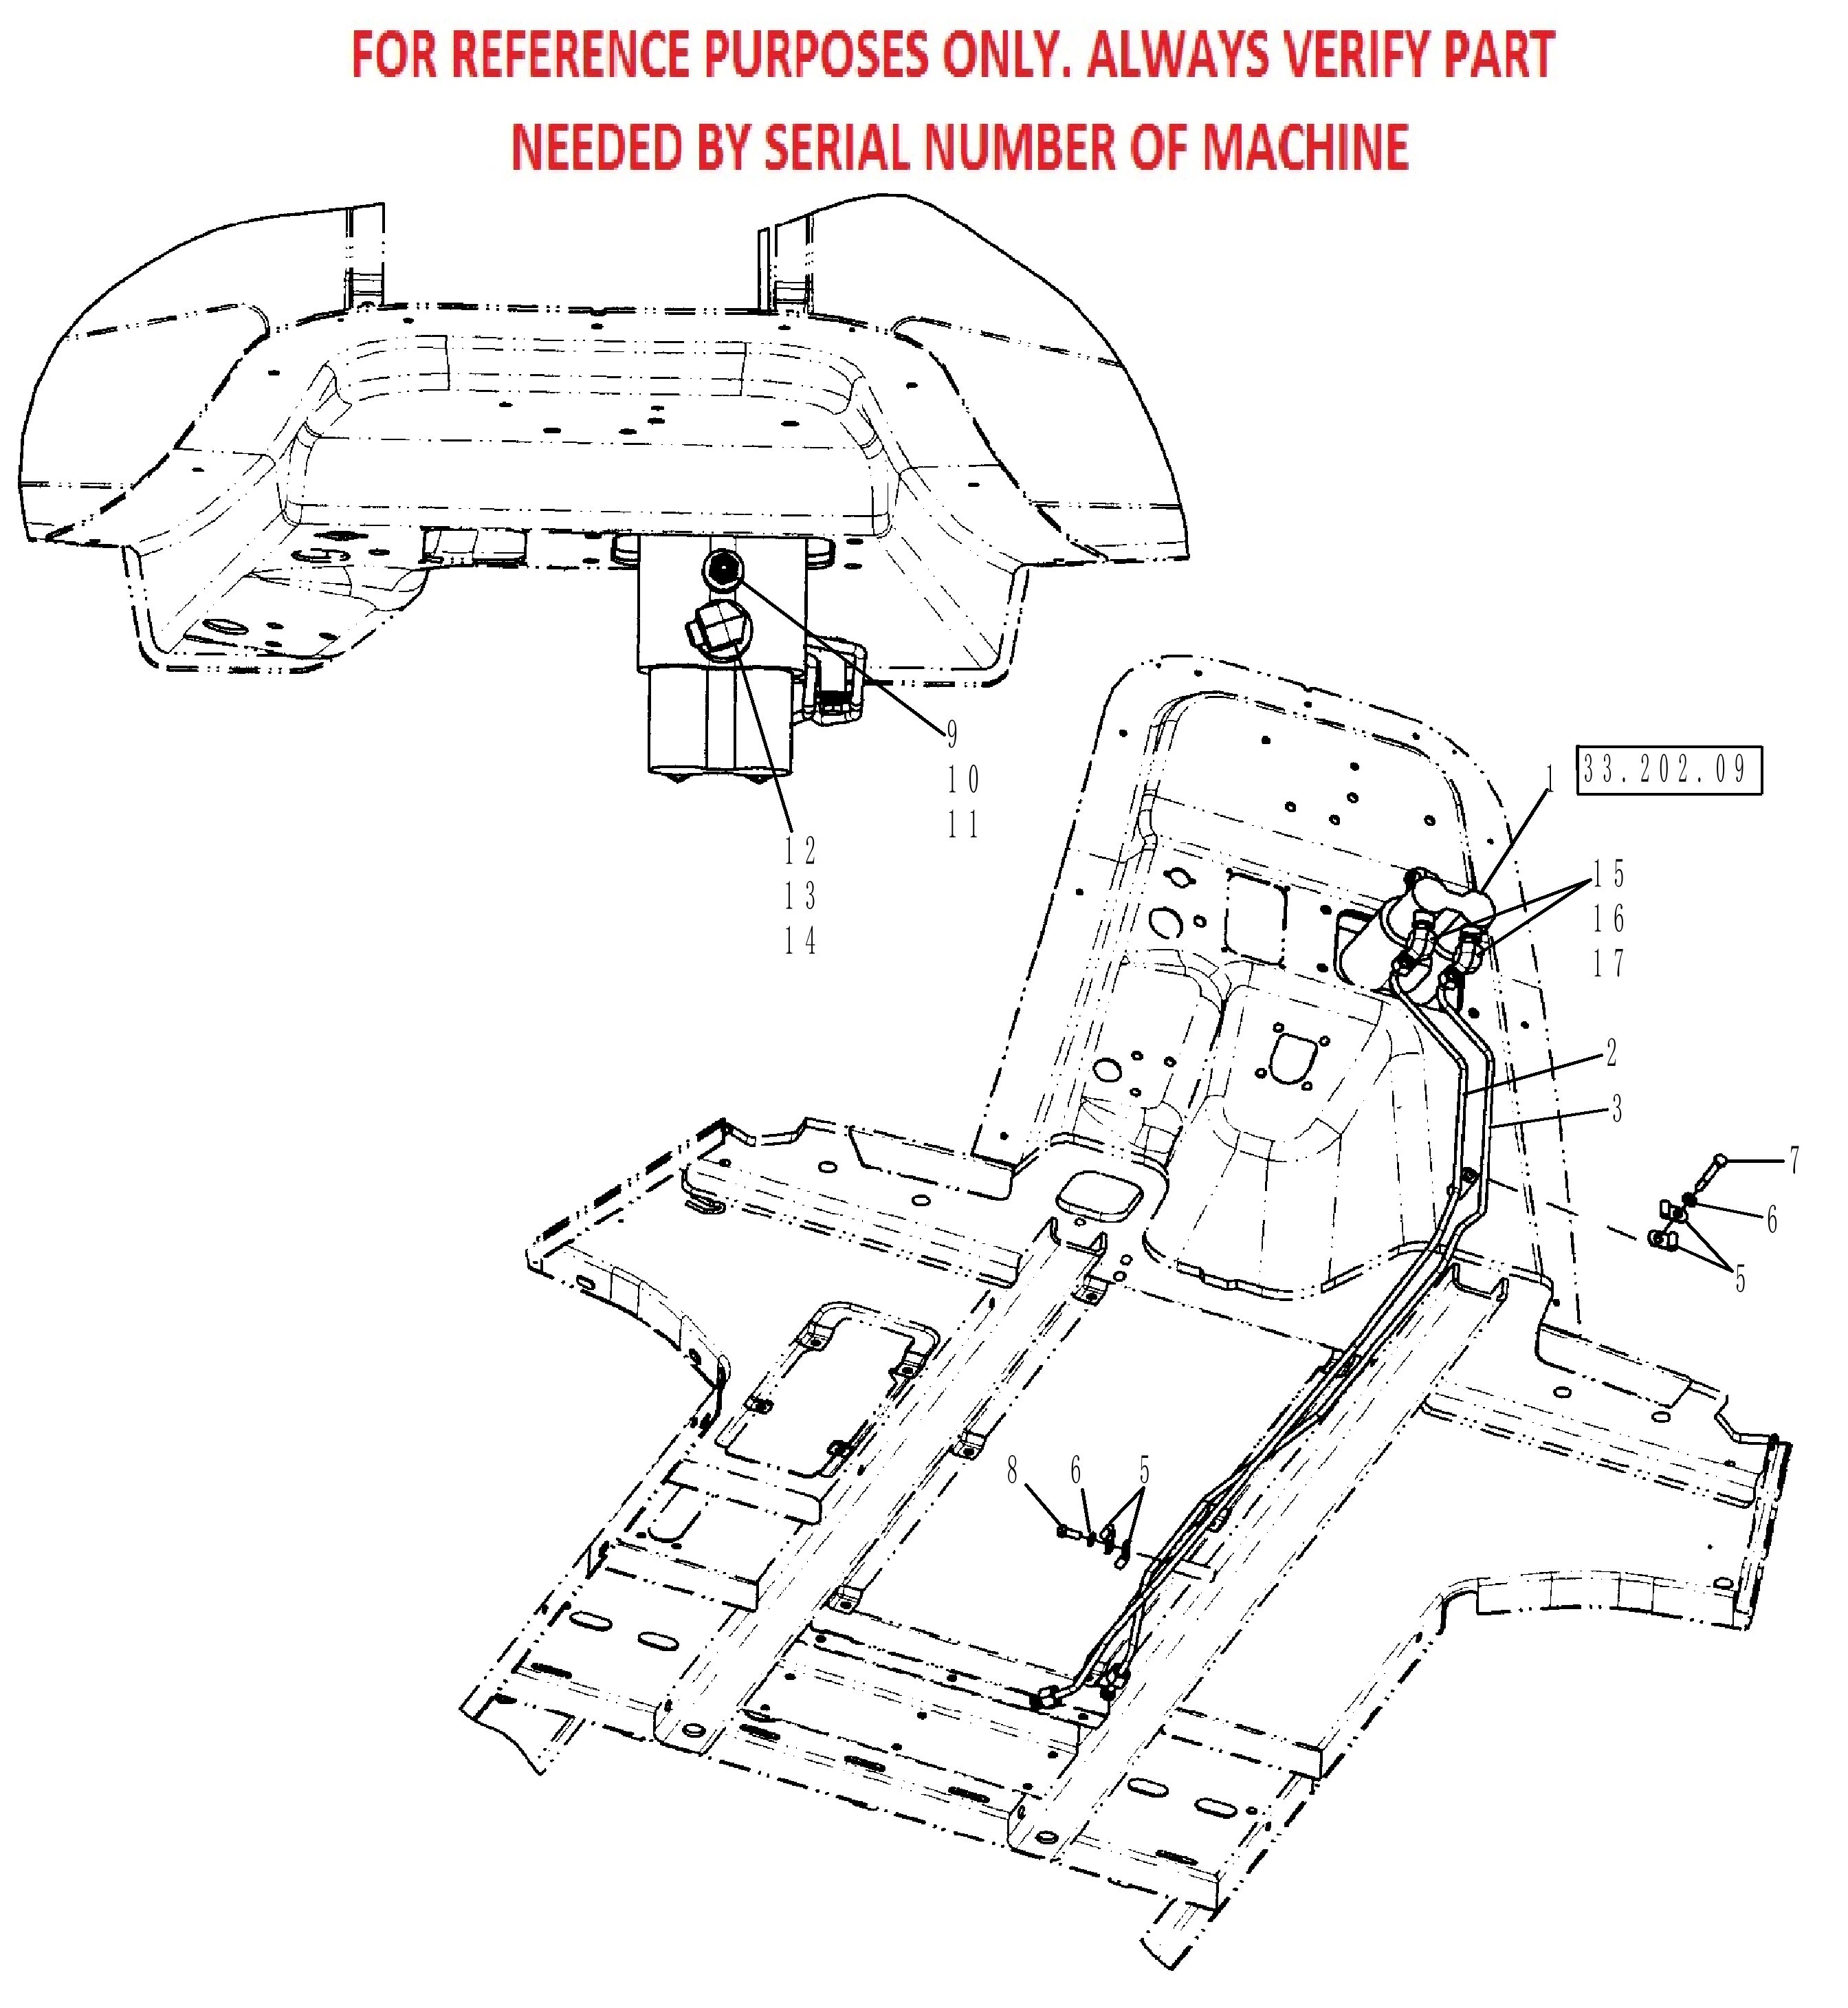 Master Cylinder Parts Diagram Case 580n Tier 3 Loader Backhoe Parts Brakes Of Master Cylinder Parts Diagram